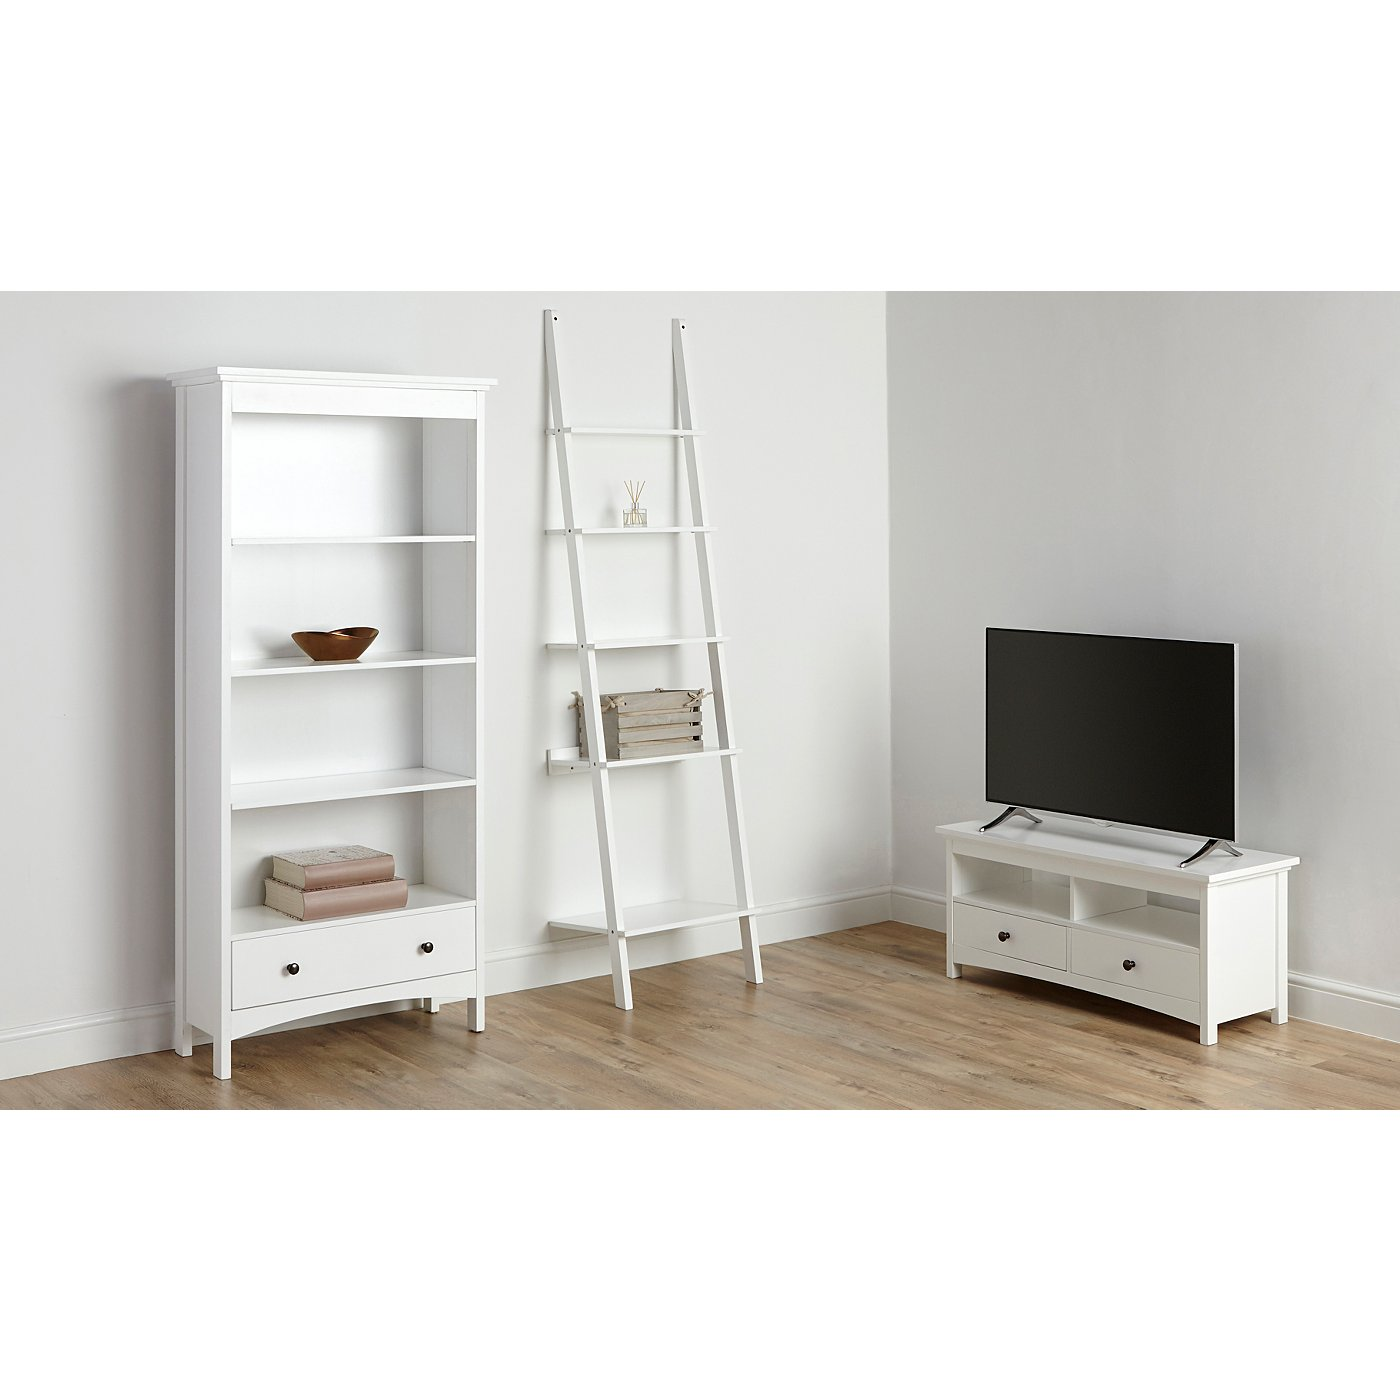 Tamsin Living Room Furniture Range - White | Living Room | George ...